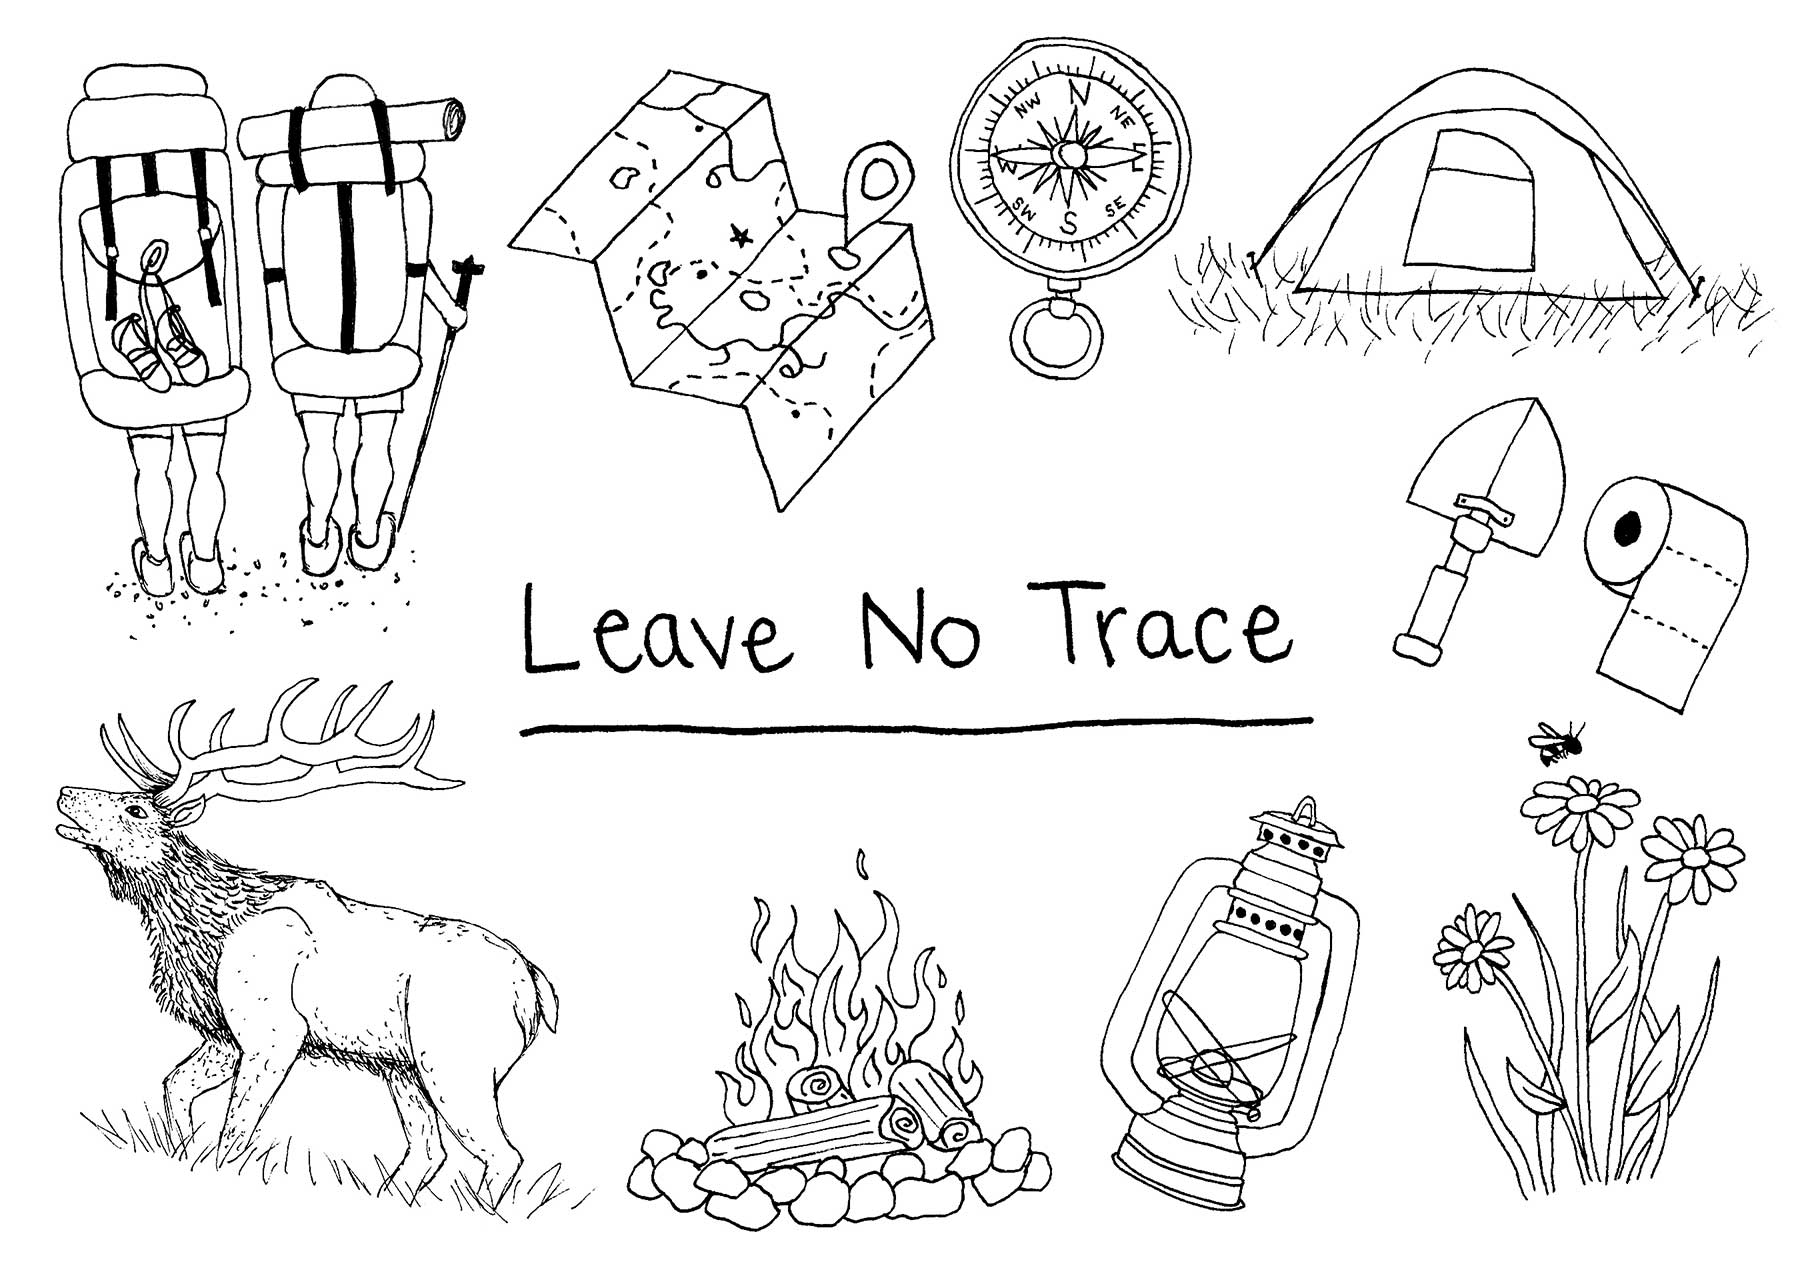 Leave No Trace Dispelling Myths 7 Principles Illustrated